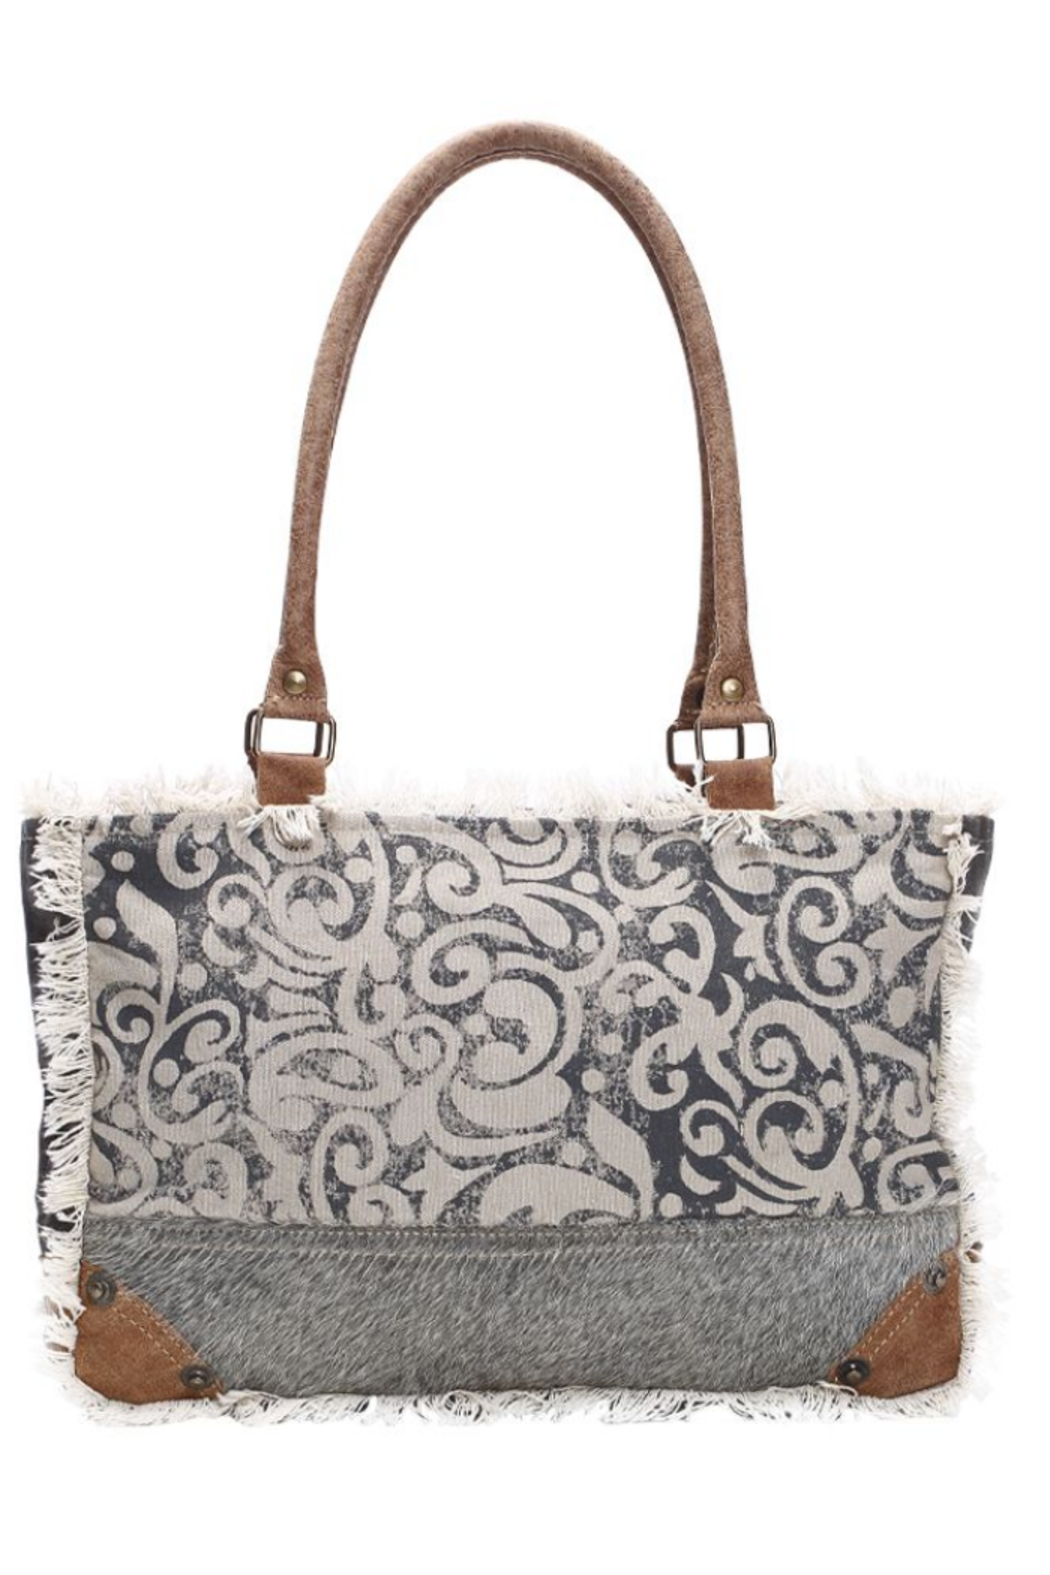 Myra Bag LEAF PRINT SMALL BAG S-1151 - Front Cropped Image